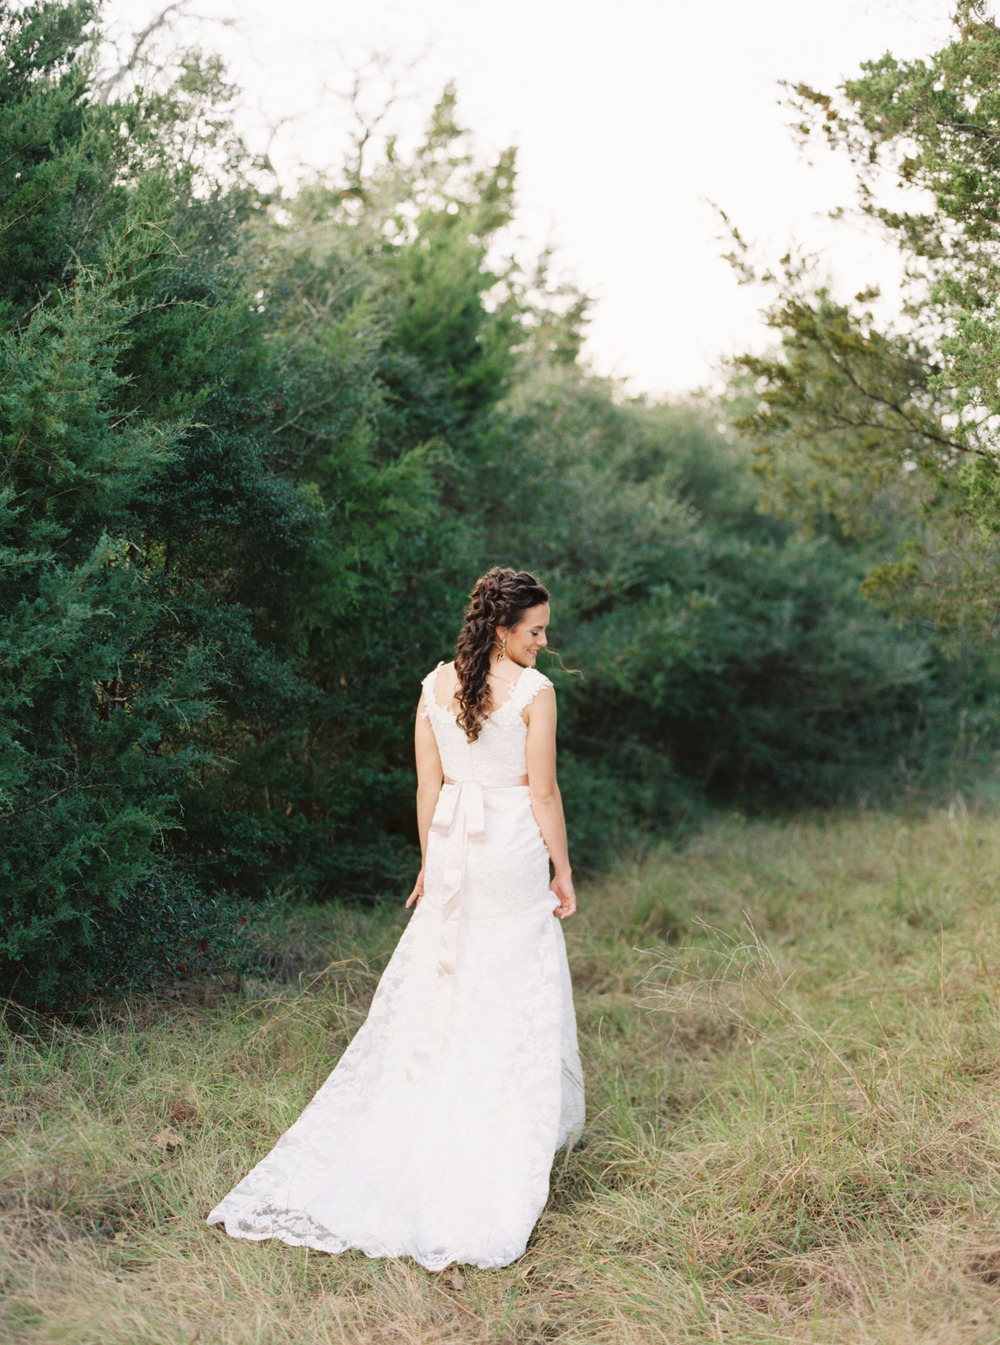 Sarah Best Photography - Emily's Bridals-96.jpg